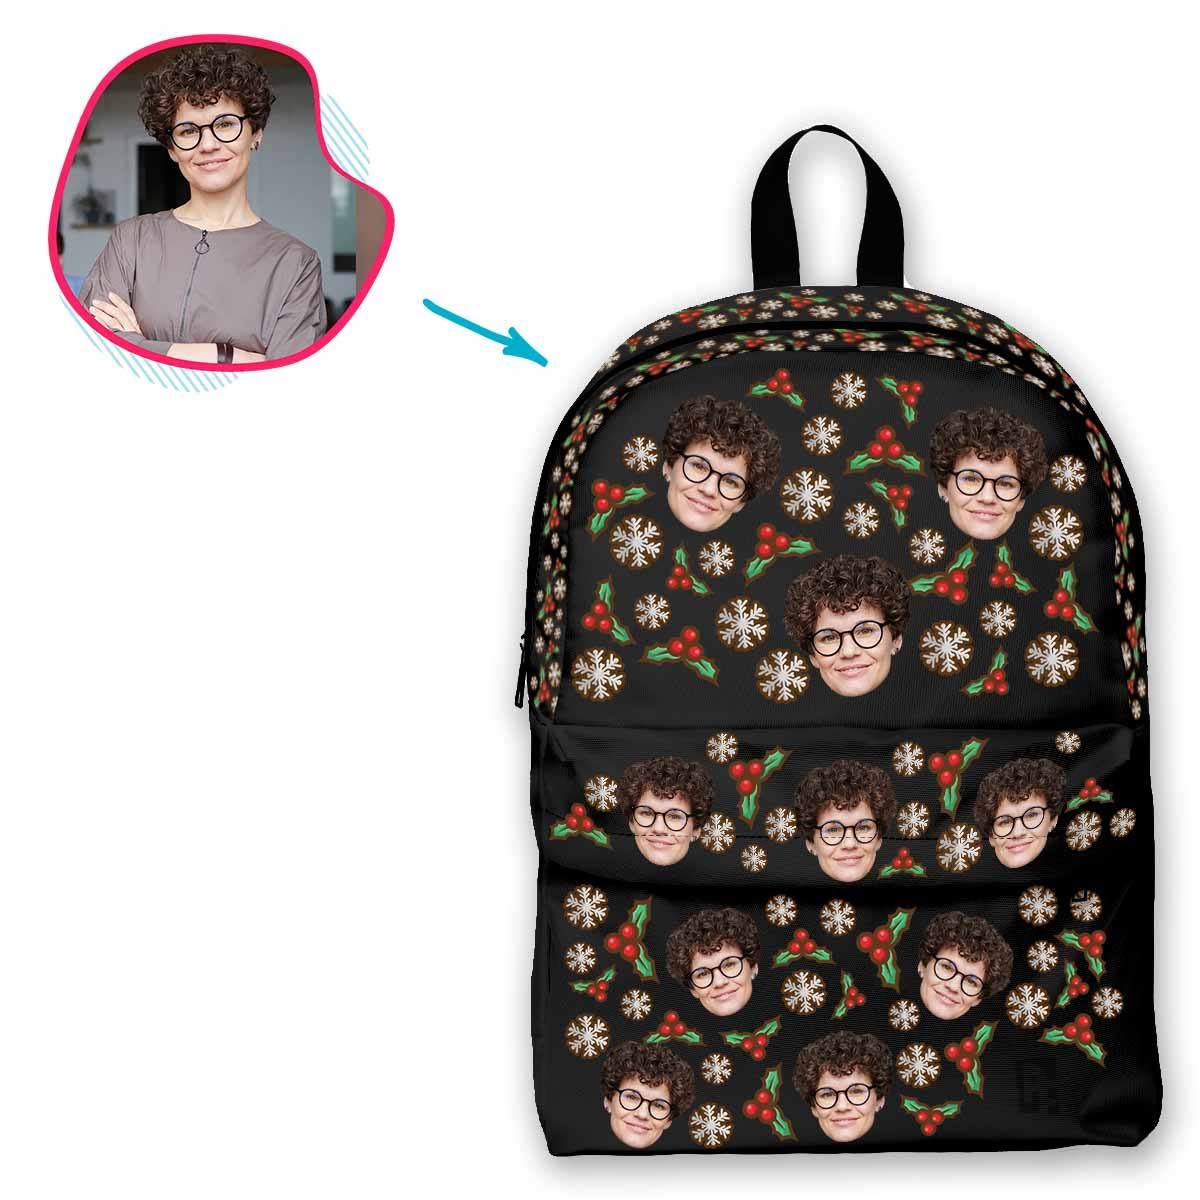 dark Mistletoe classic backpack personalized with photo of face printed on it